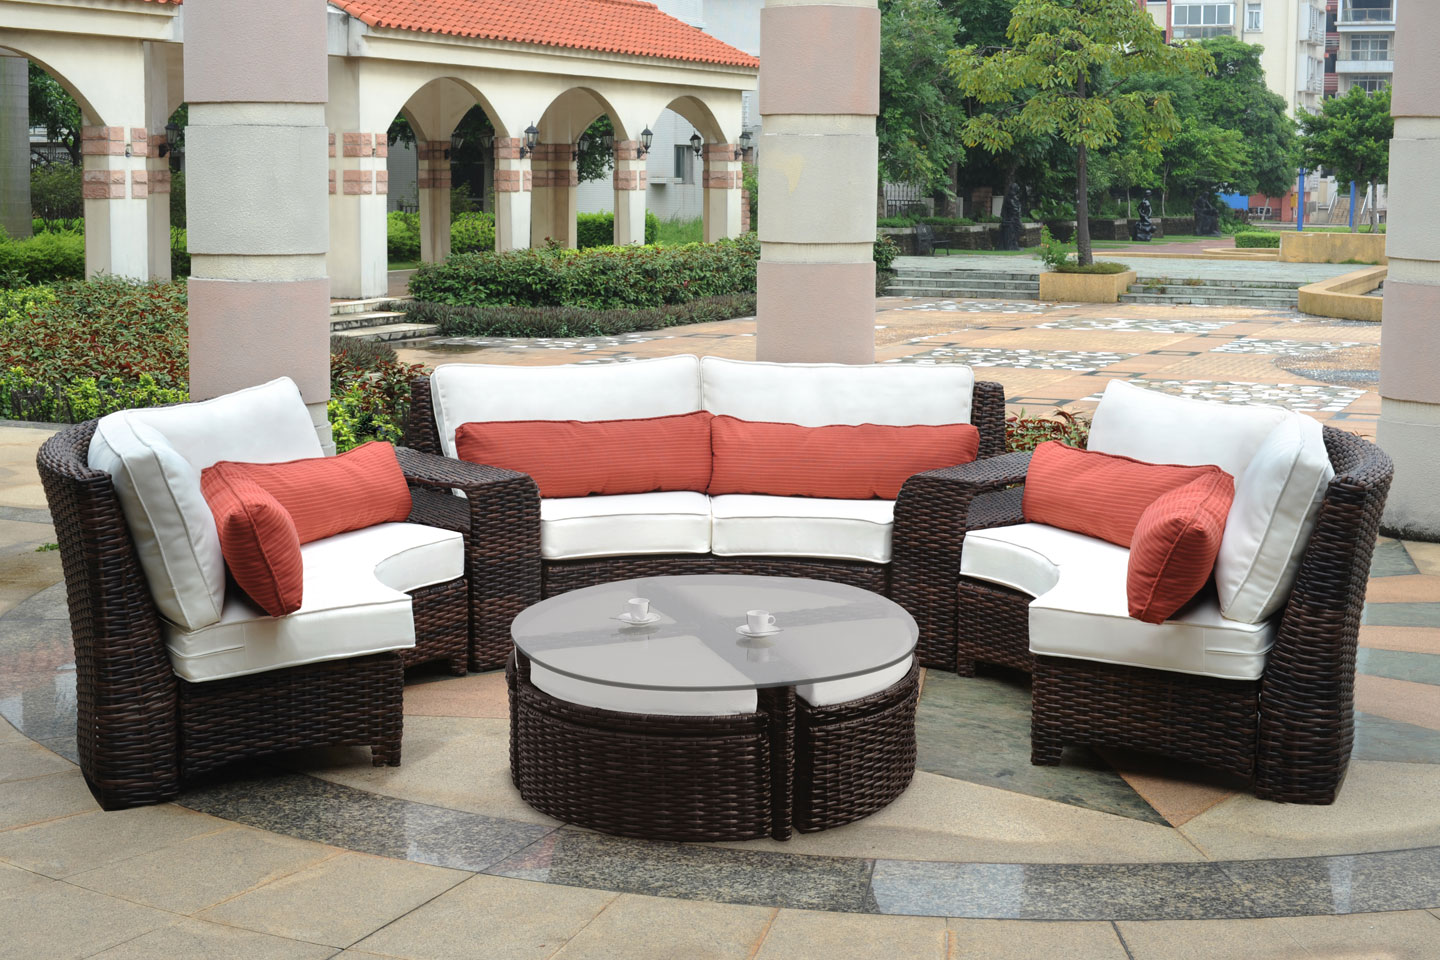 Fiji curved outdoor resin wicker patio sectional for I furniture outdoor furniture